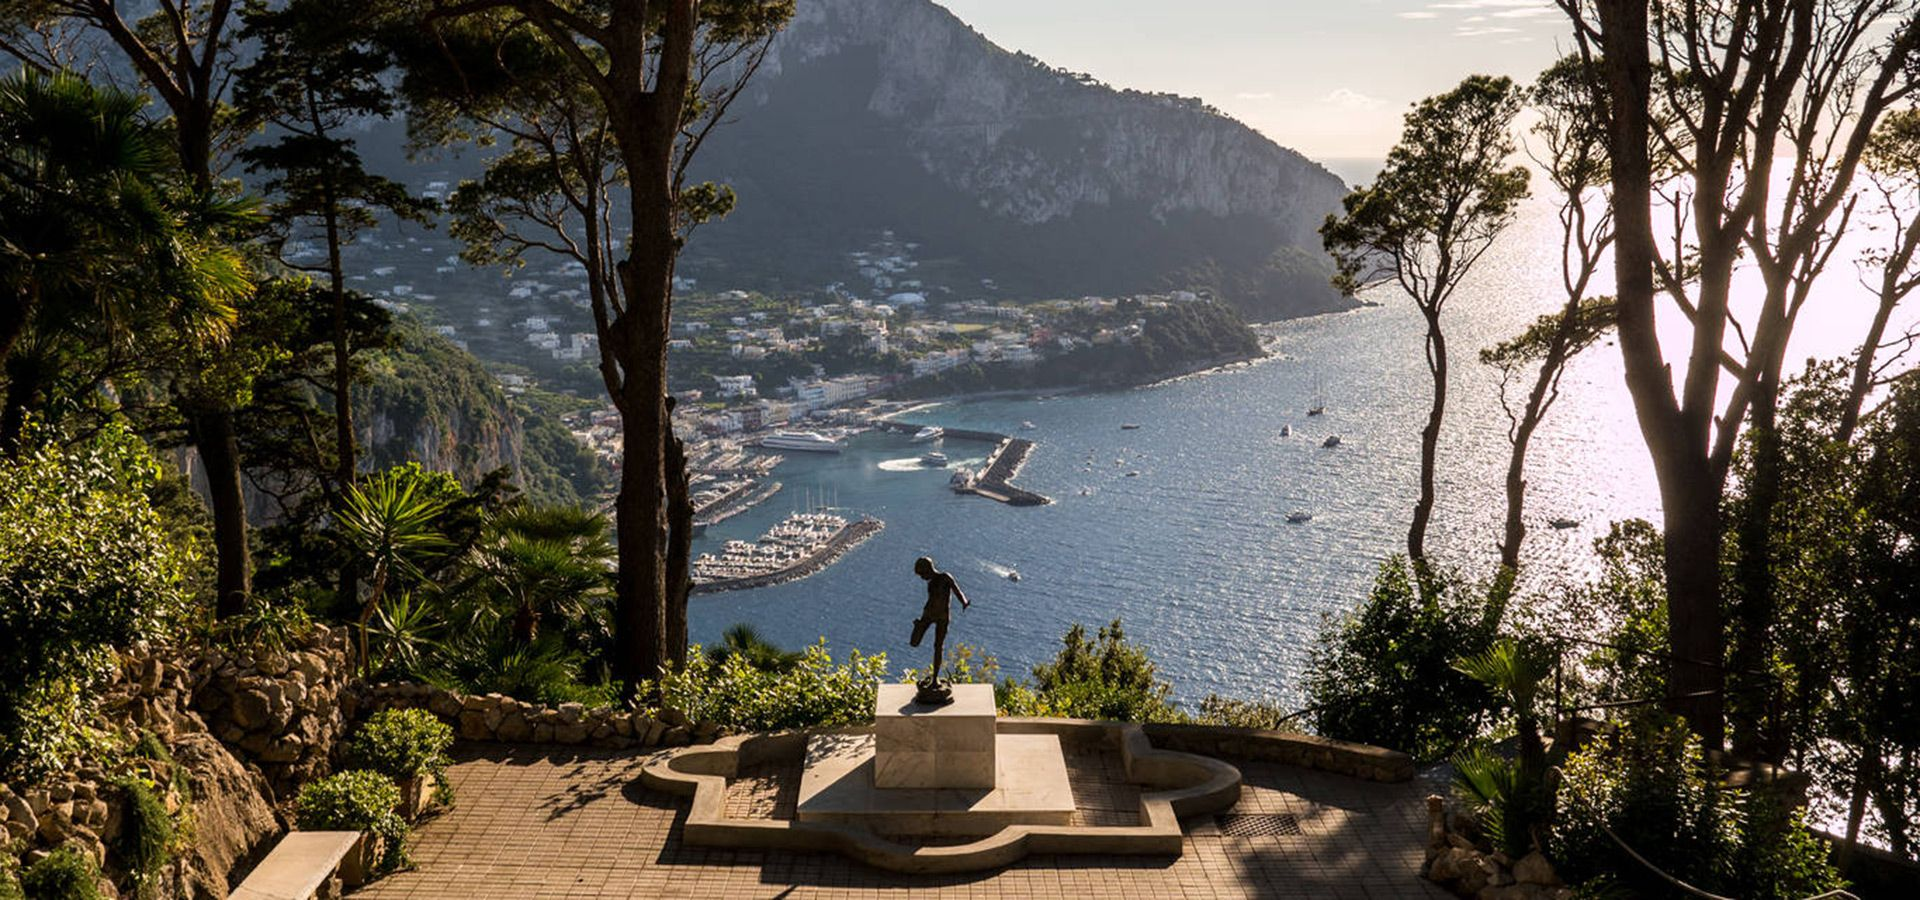 From Naples to Capri